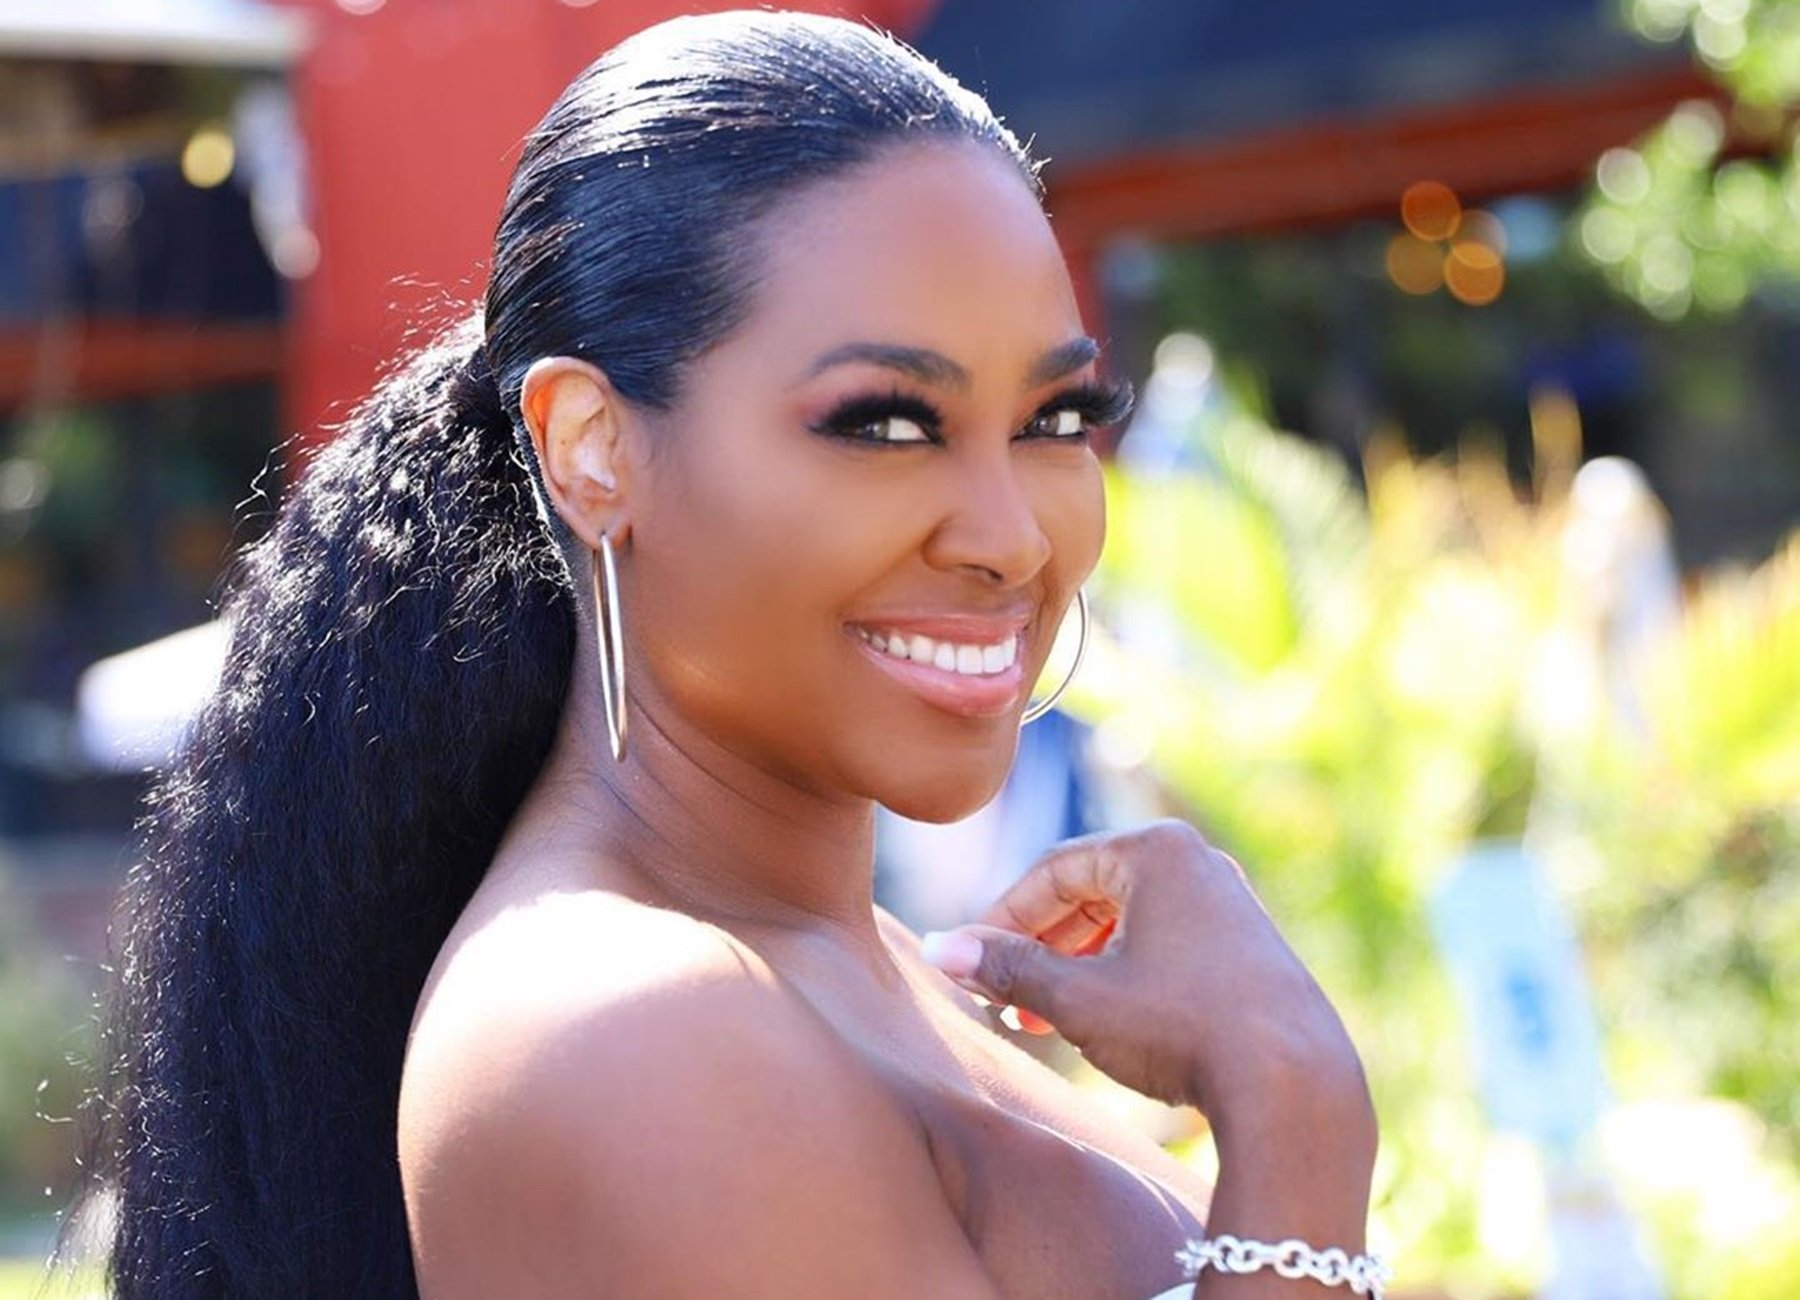 Kenya Moore's Daughter, Brooklyn Daly Is A Warrior Princess In This Latest Photo